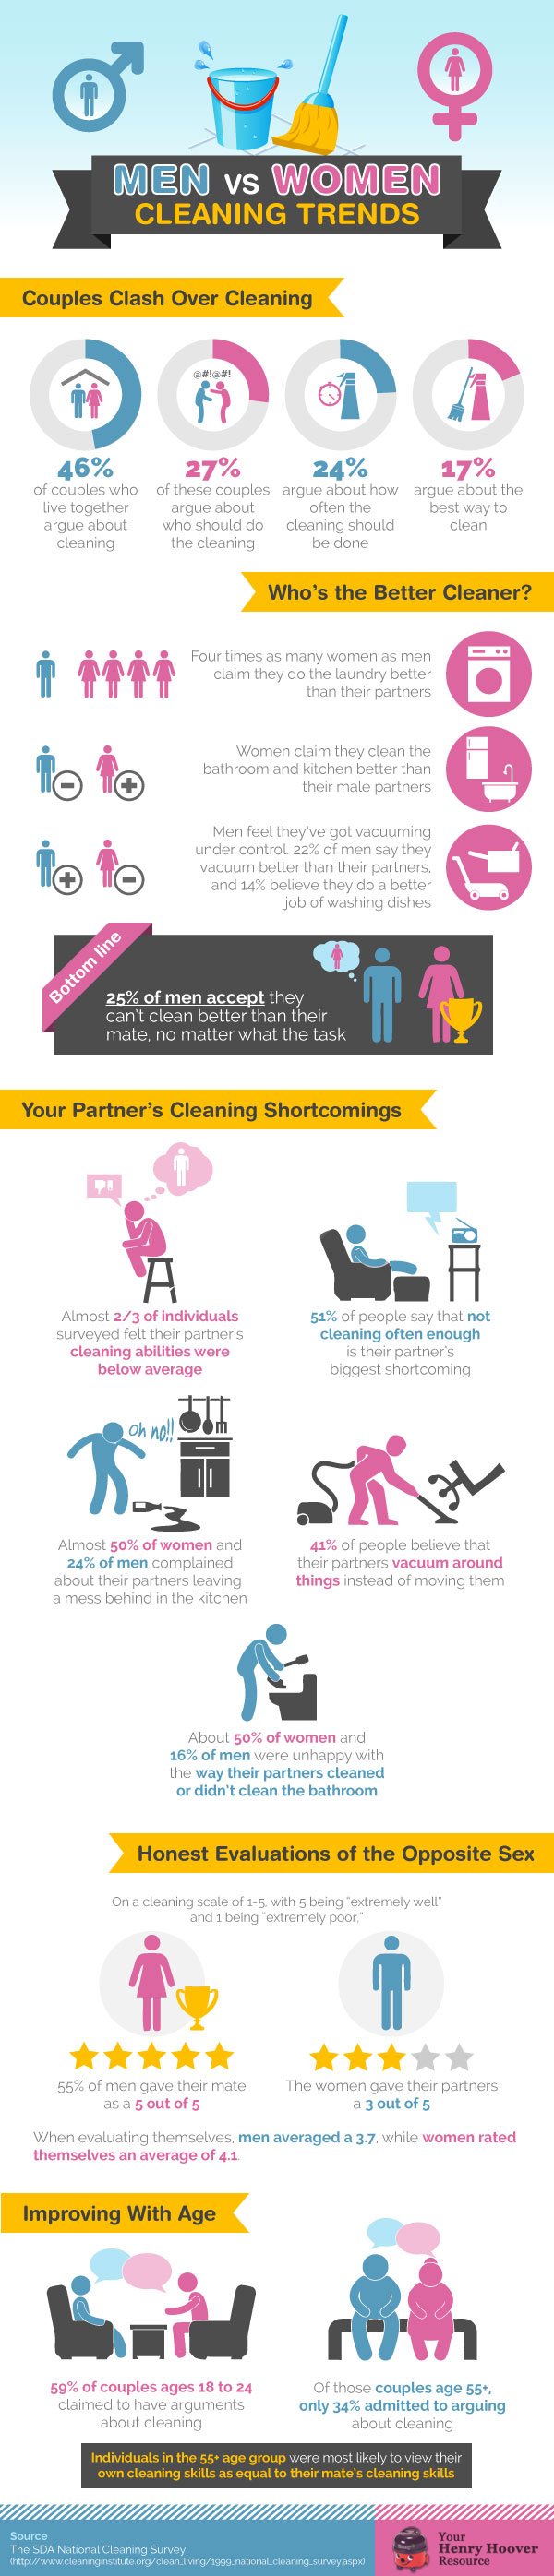 Men vs Women Cleaning Trends